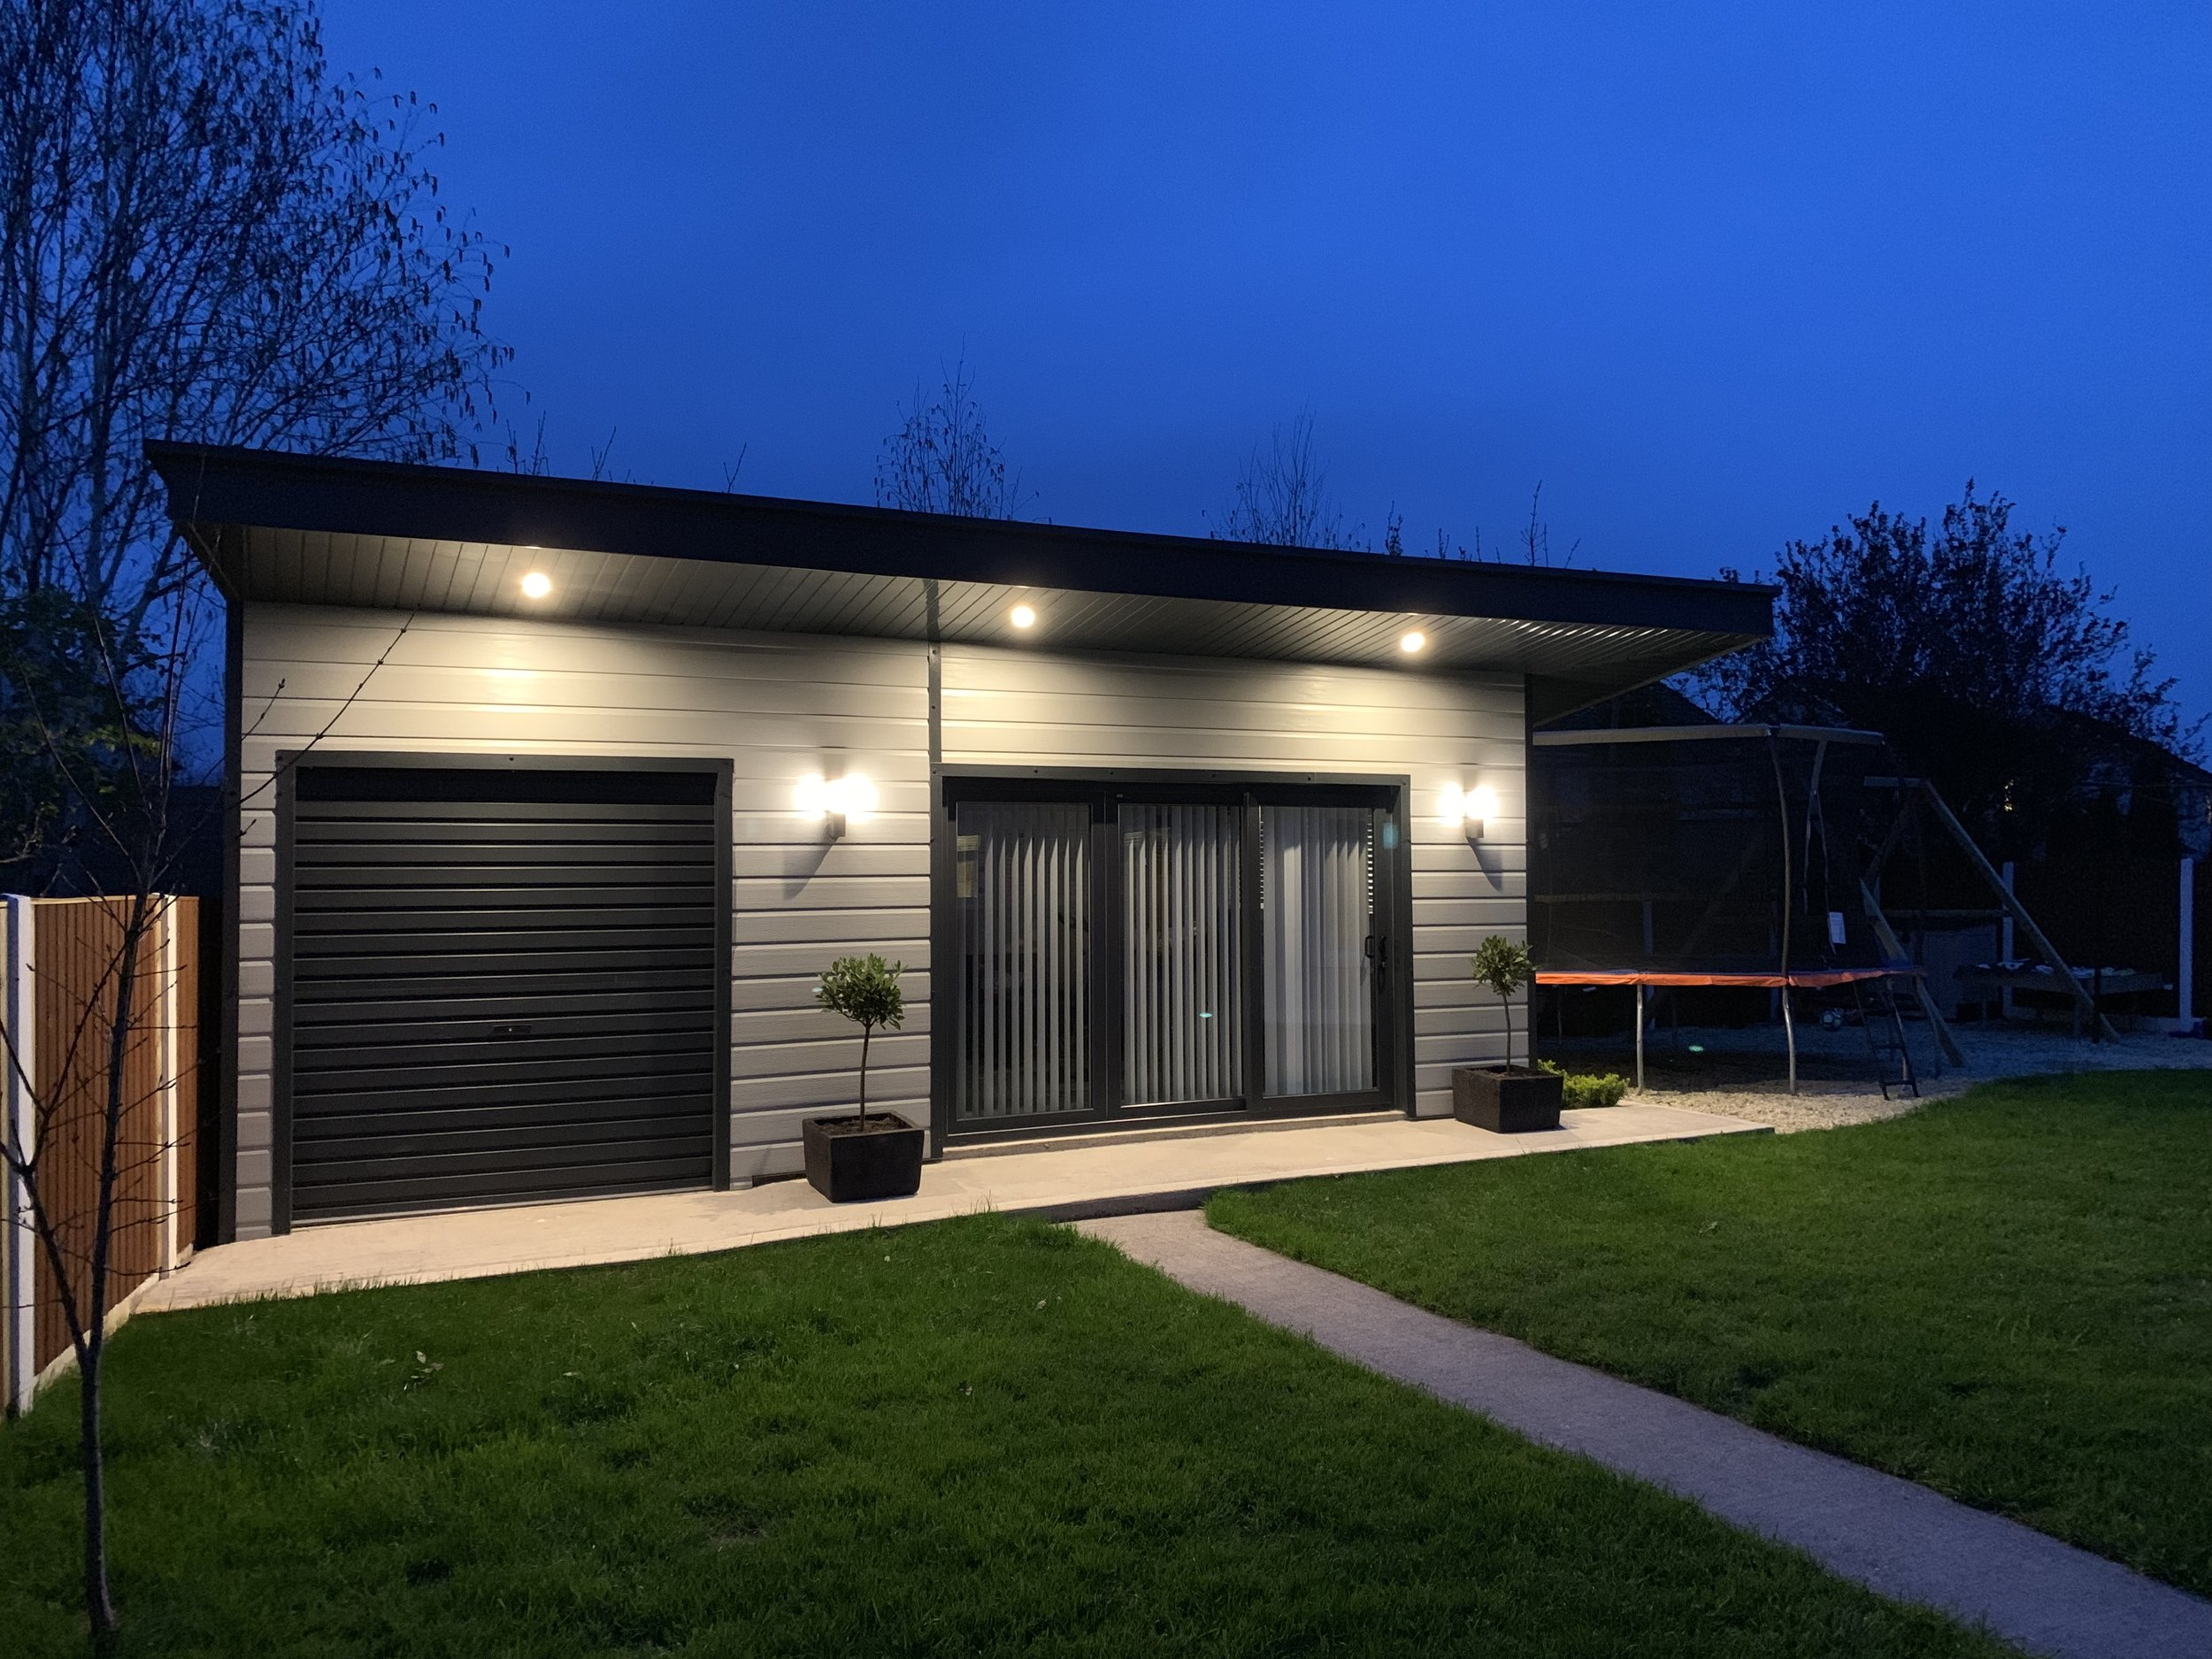 A1-Sheds-Steel-Shed-Manufacturer-Cork-Irish-Tiny-House-Home-Offices.JPG